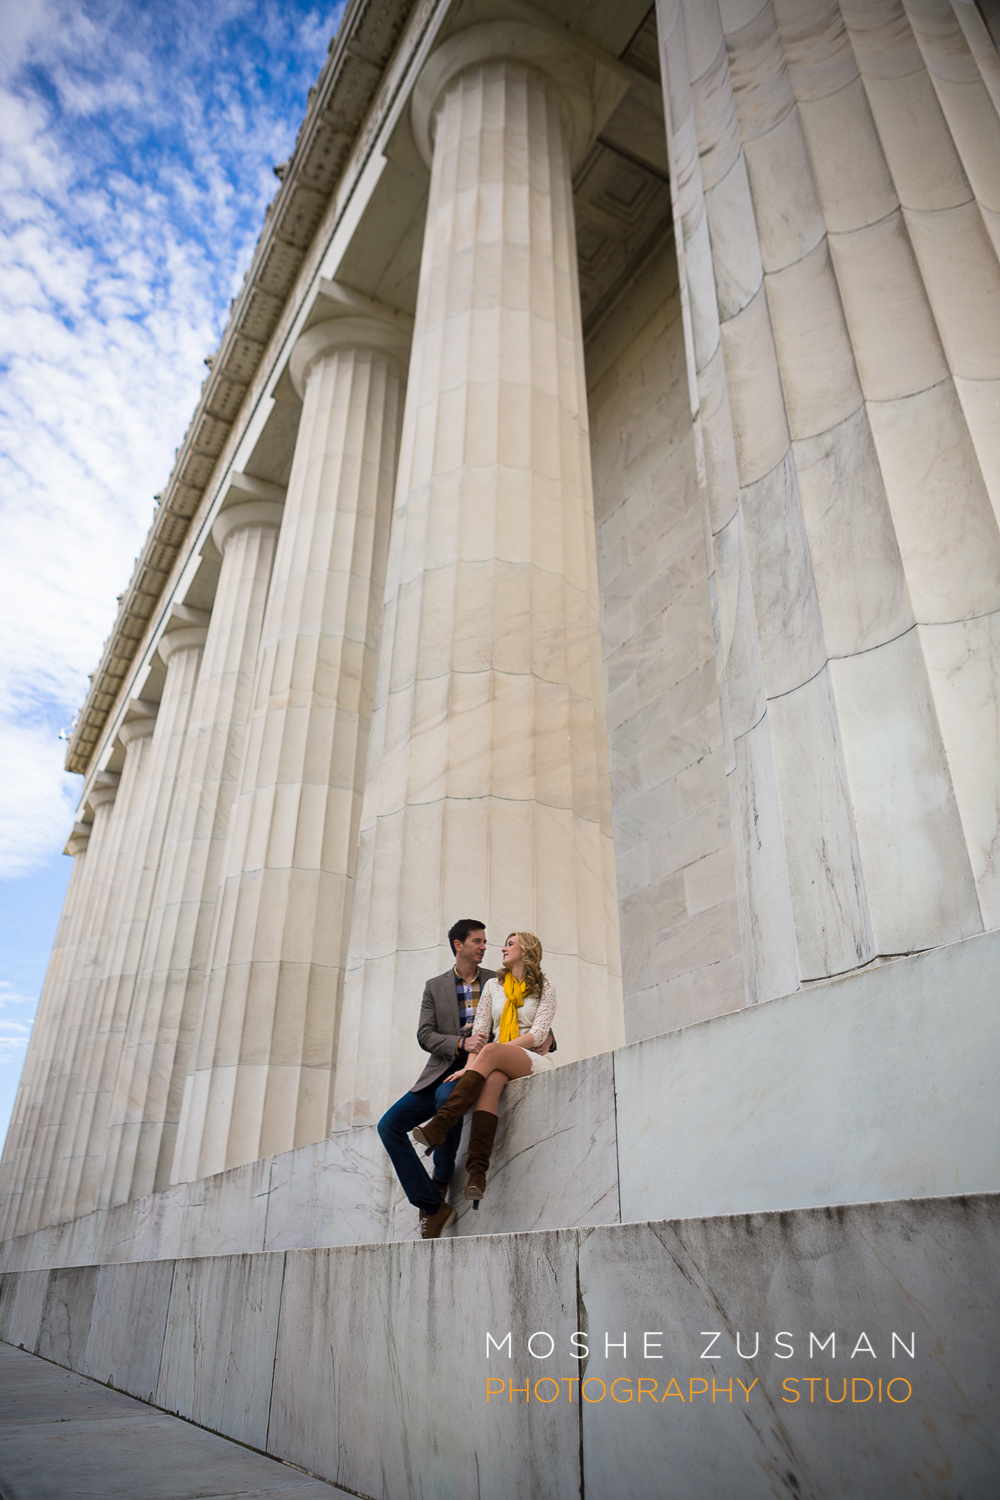 Engagement-Photographer-Washington-DC-Moshe-Zusman-Lauren-and-Tyler-01.jpg